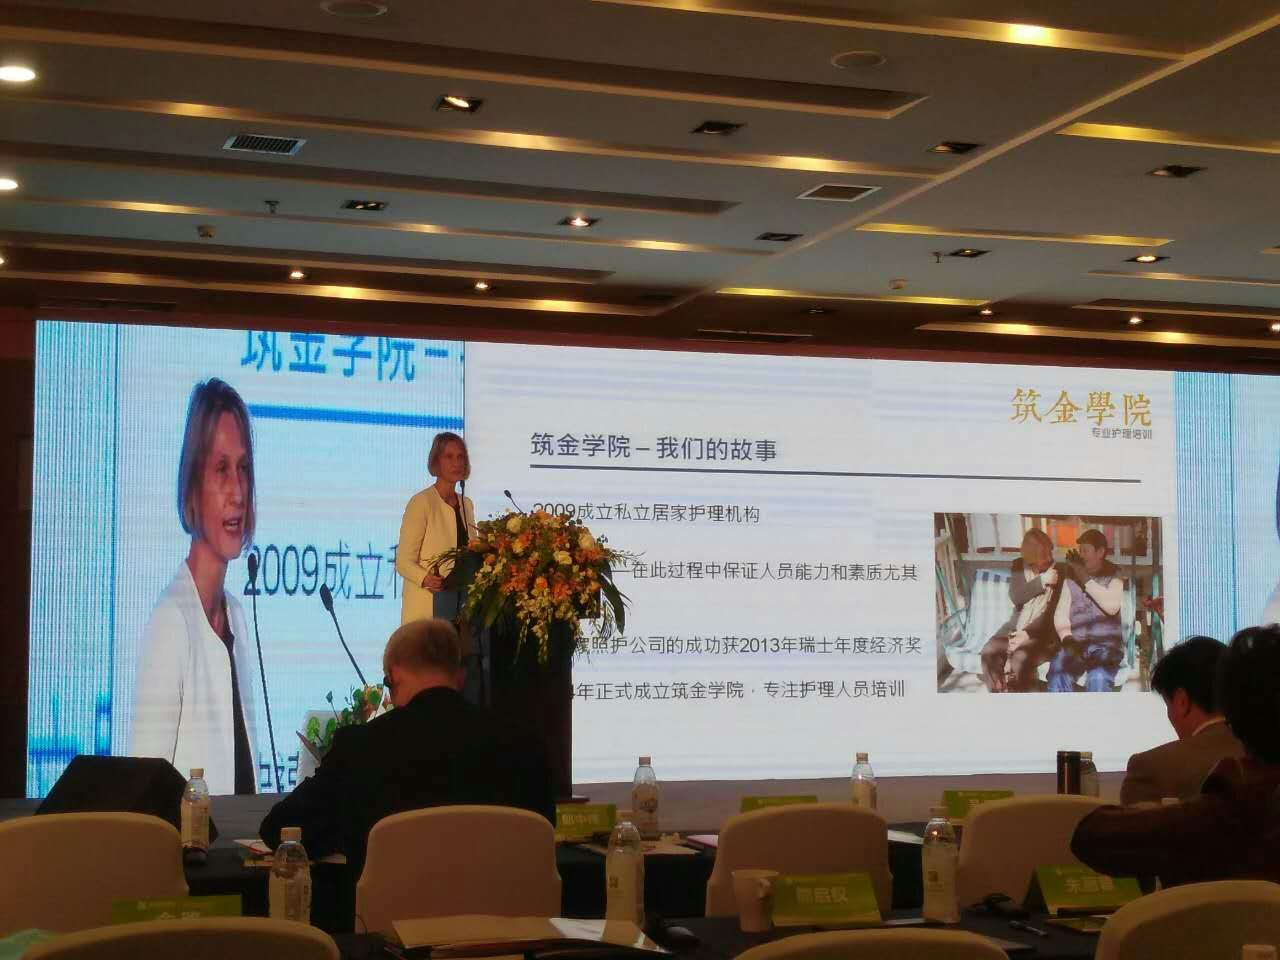 Key note speech at Health Care Expo in Chengdu